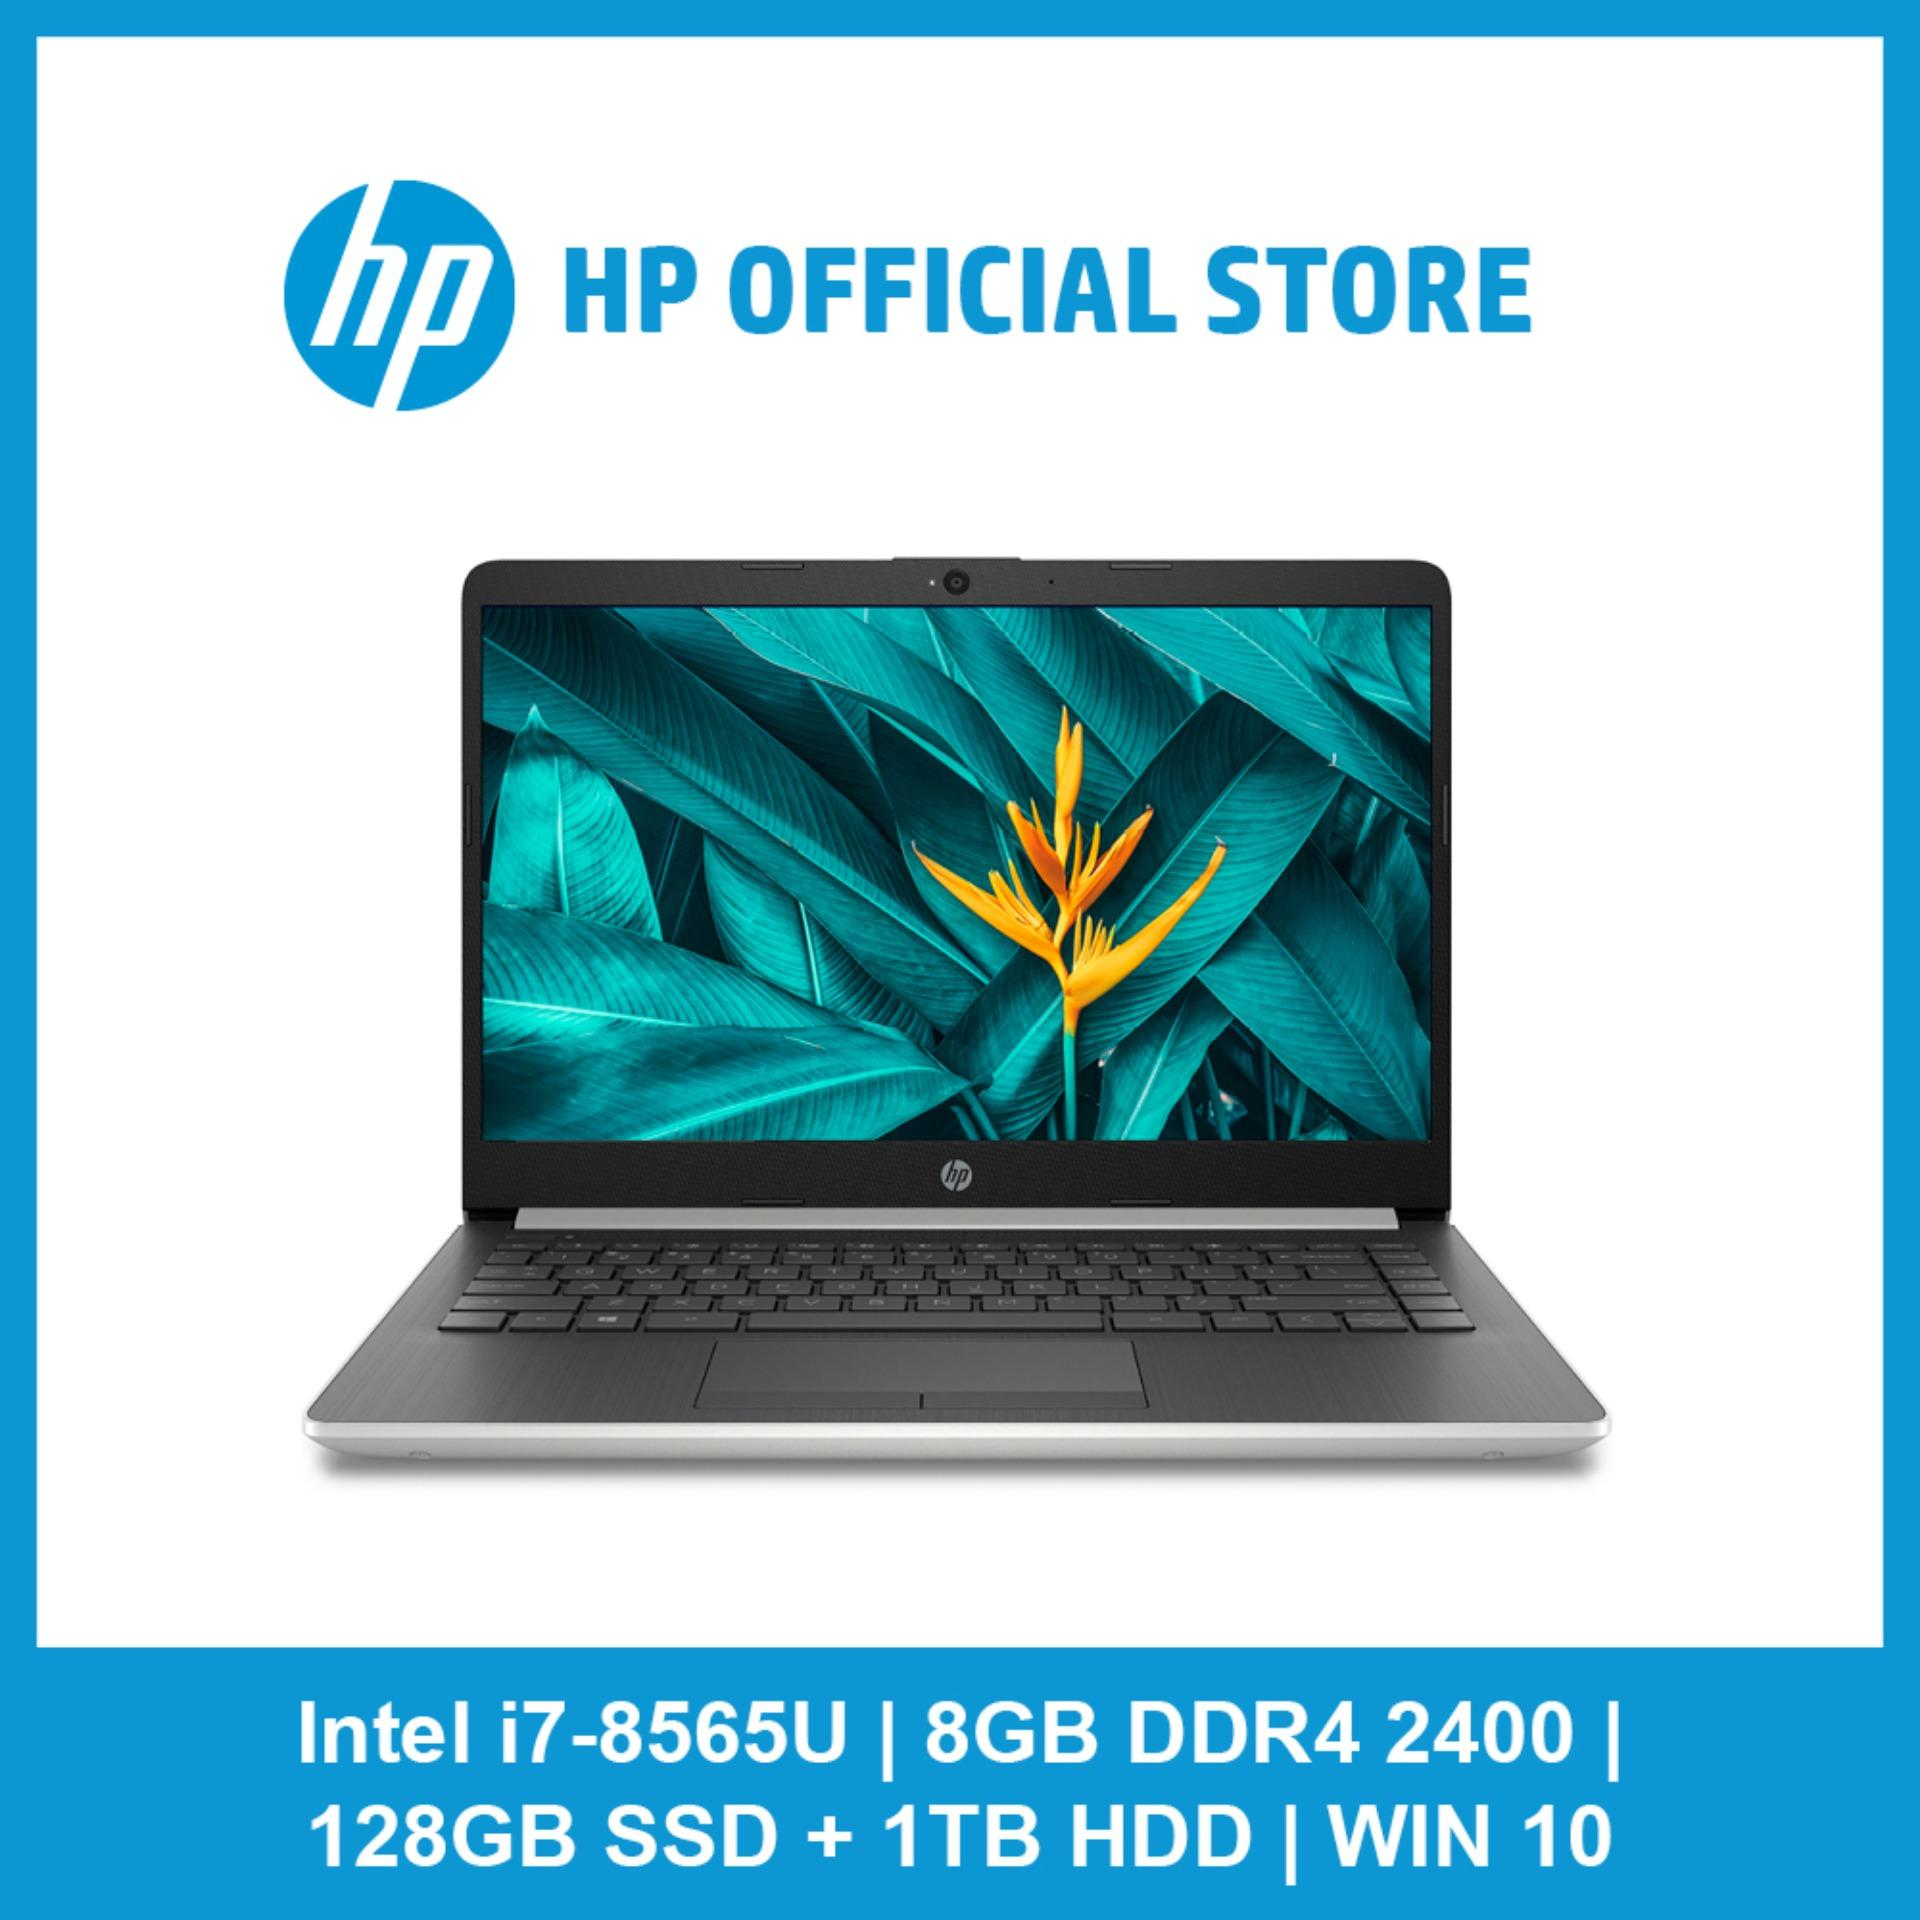 HP Notebook - 14s-cf1065tx/ Intel® Core™ i7 8565U/ 8 GB memory/ 1 TB HDD storage/ 128 GB SSD storage/ Win 10